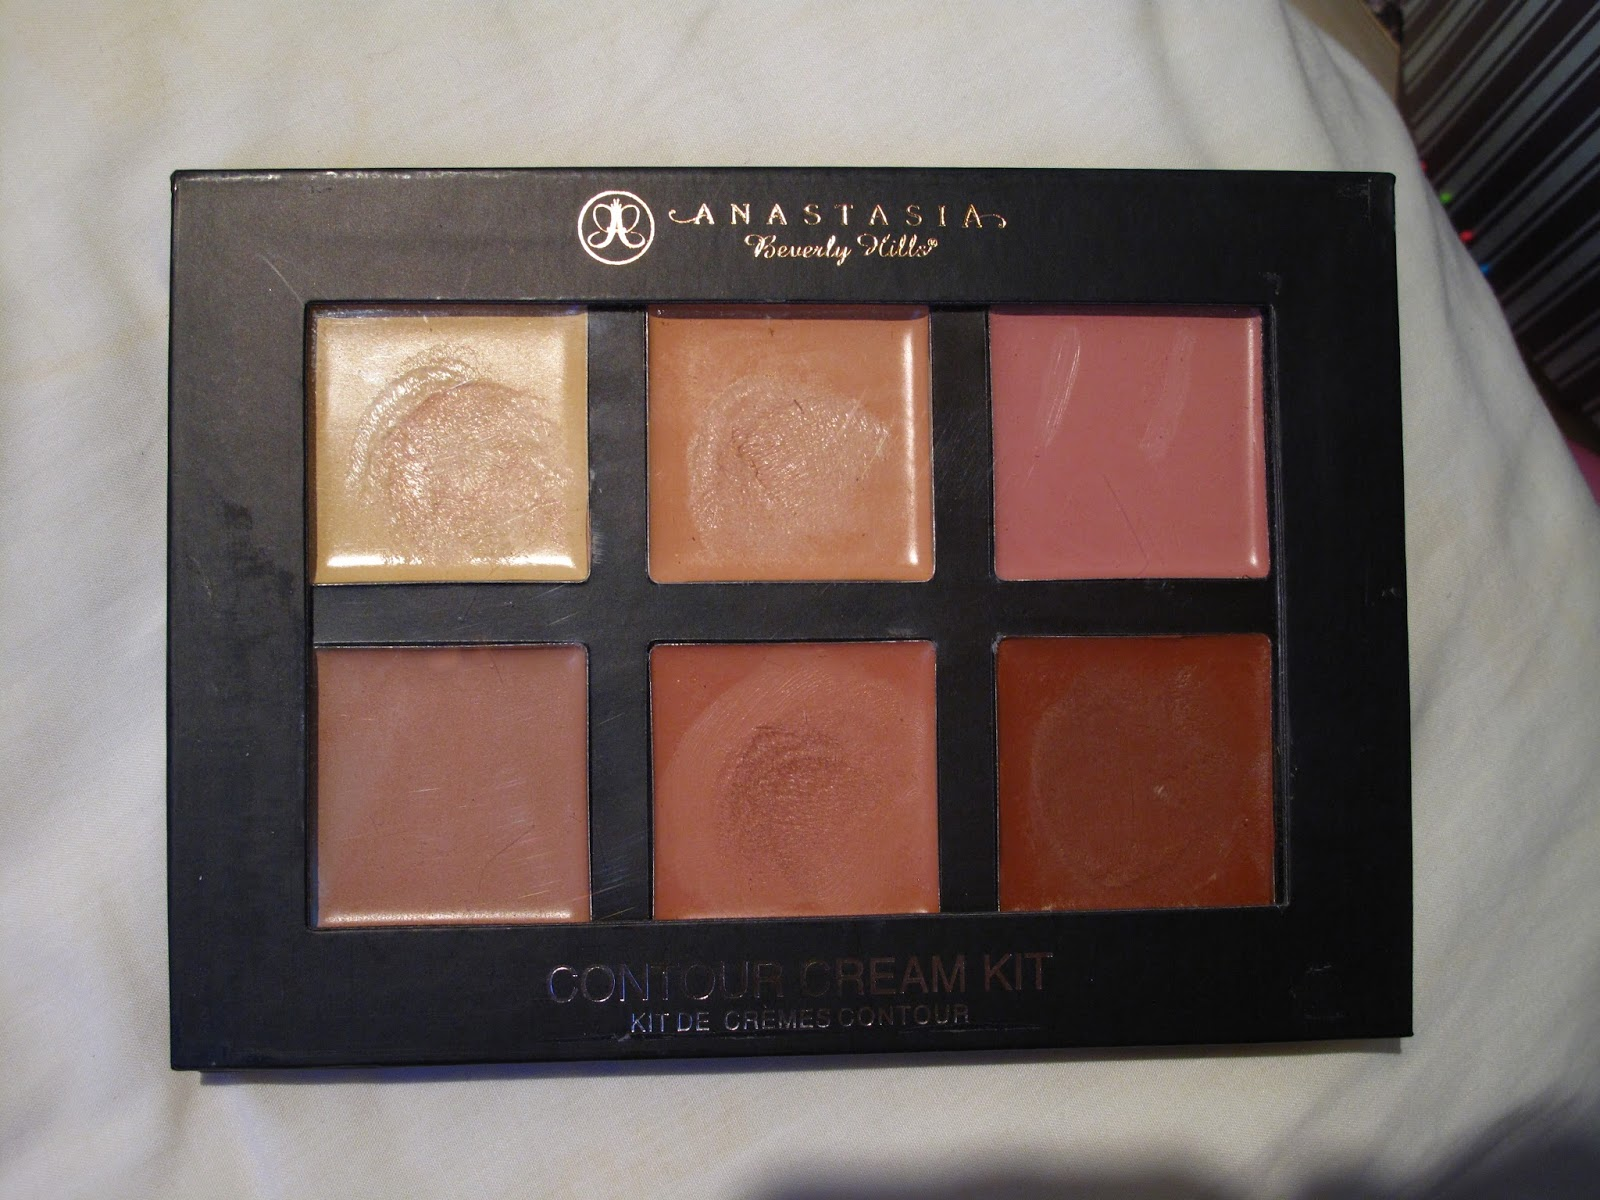 Anastasia Contour Cream Kit in Light Php 250